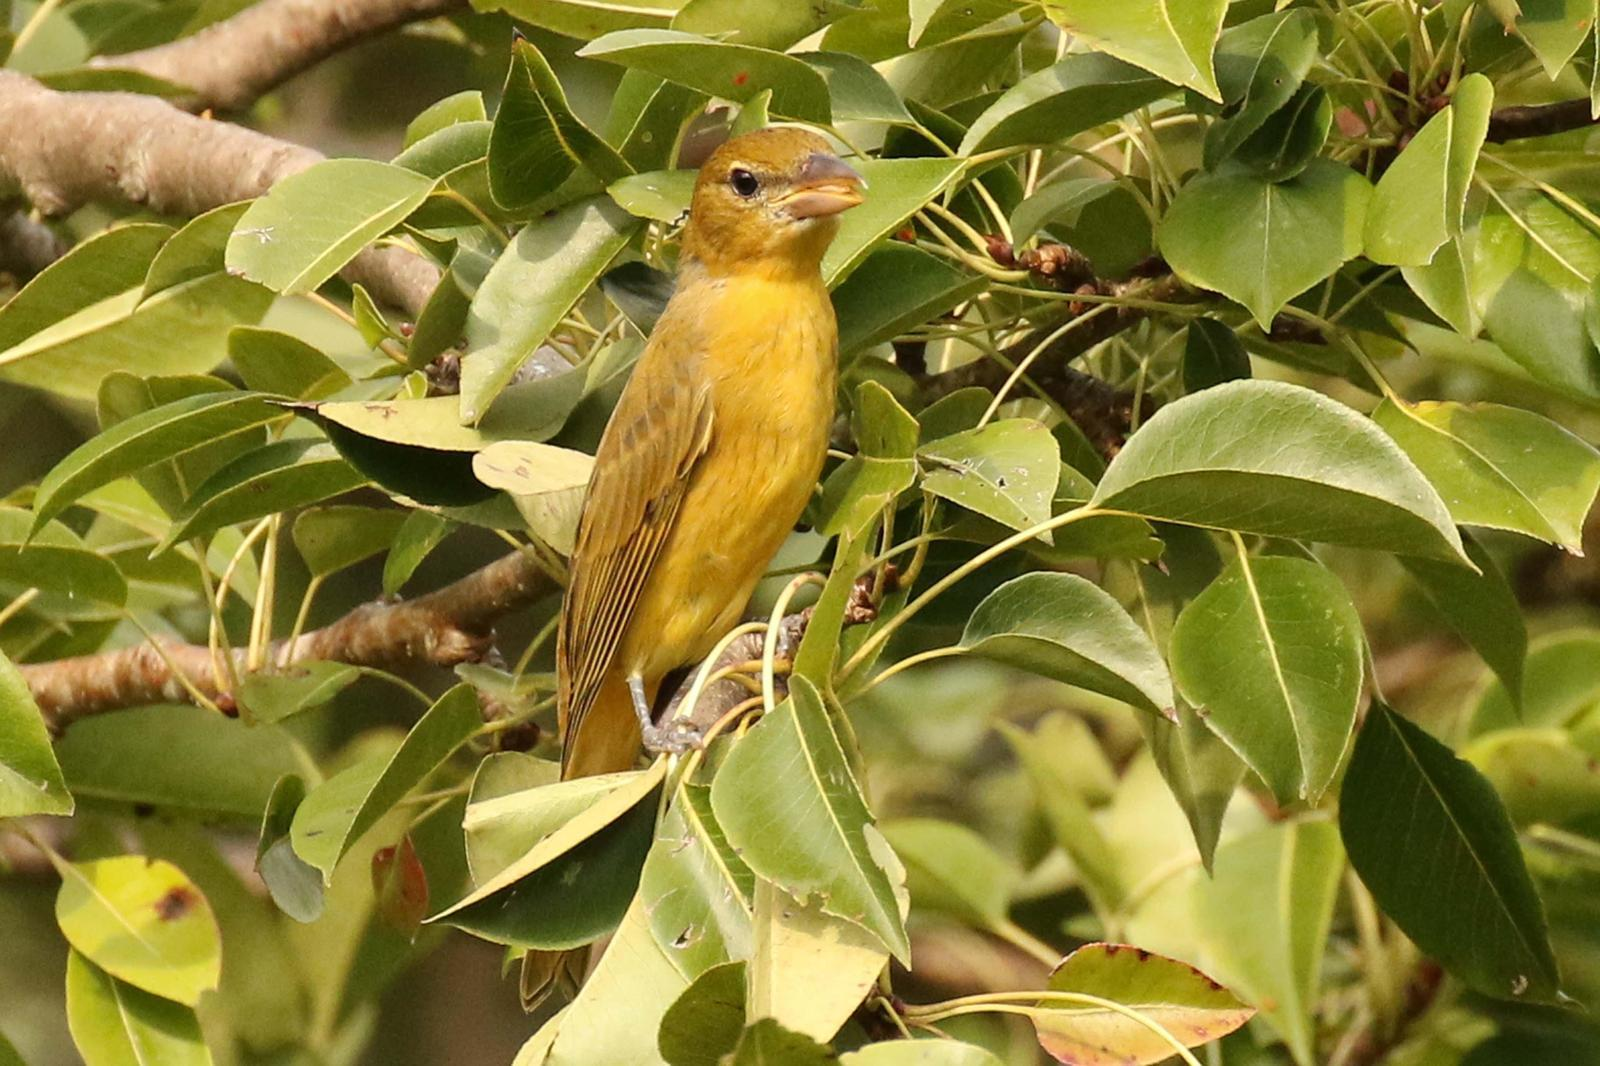 Summer Tanager Photo by Kristy Baker